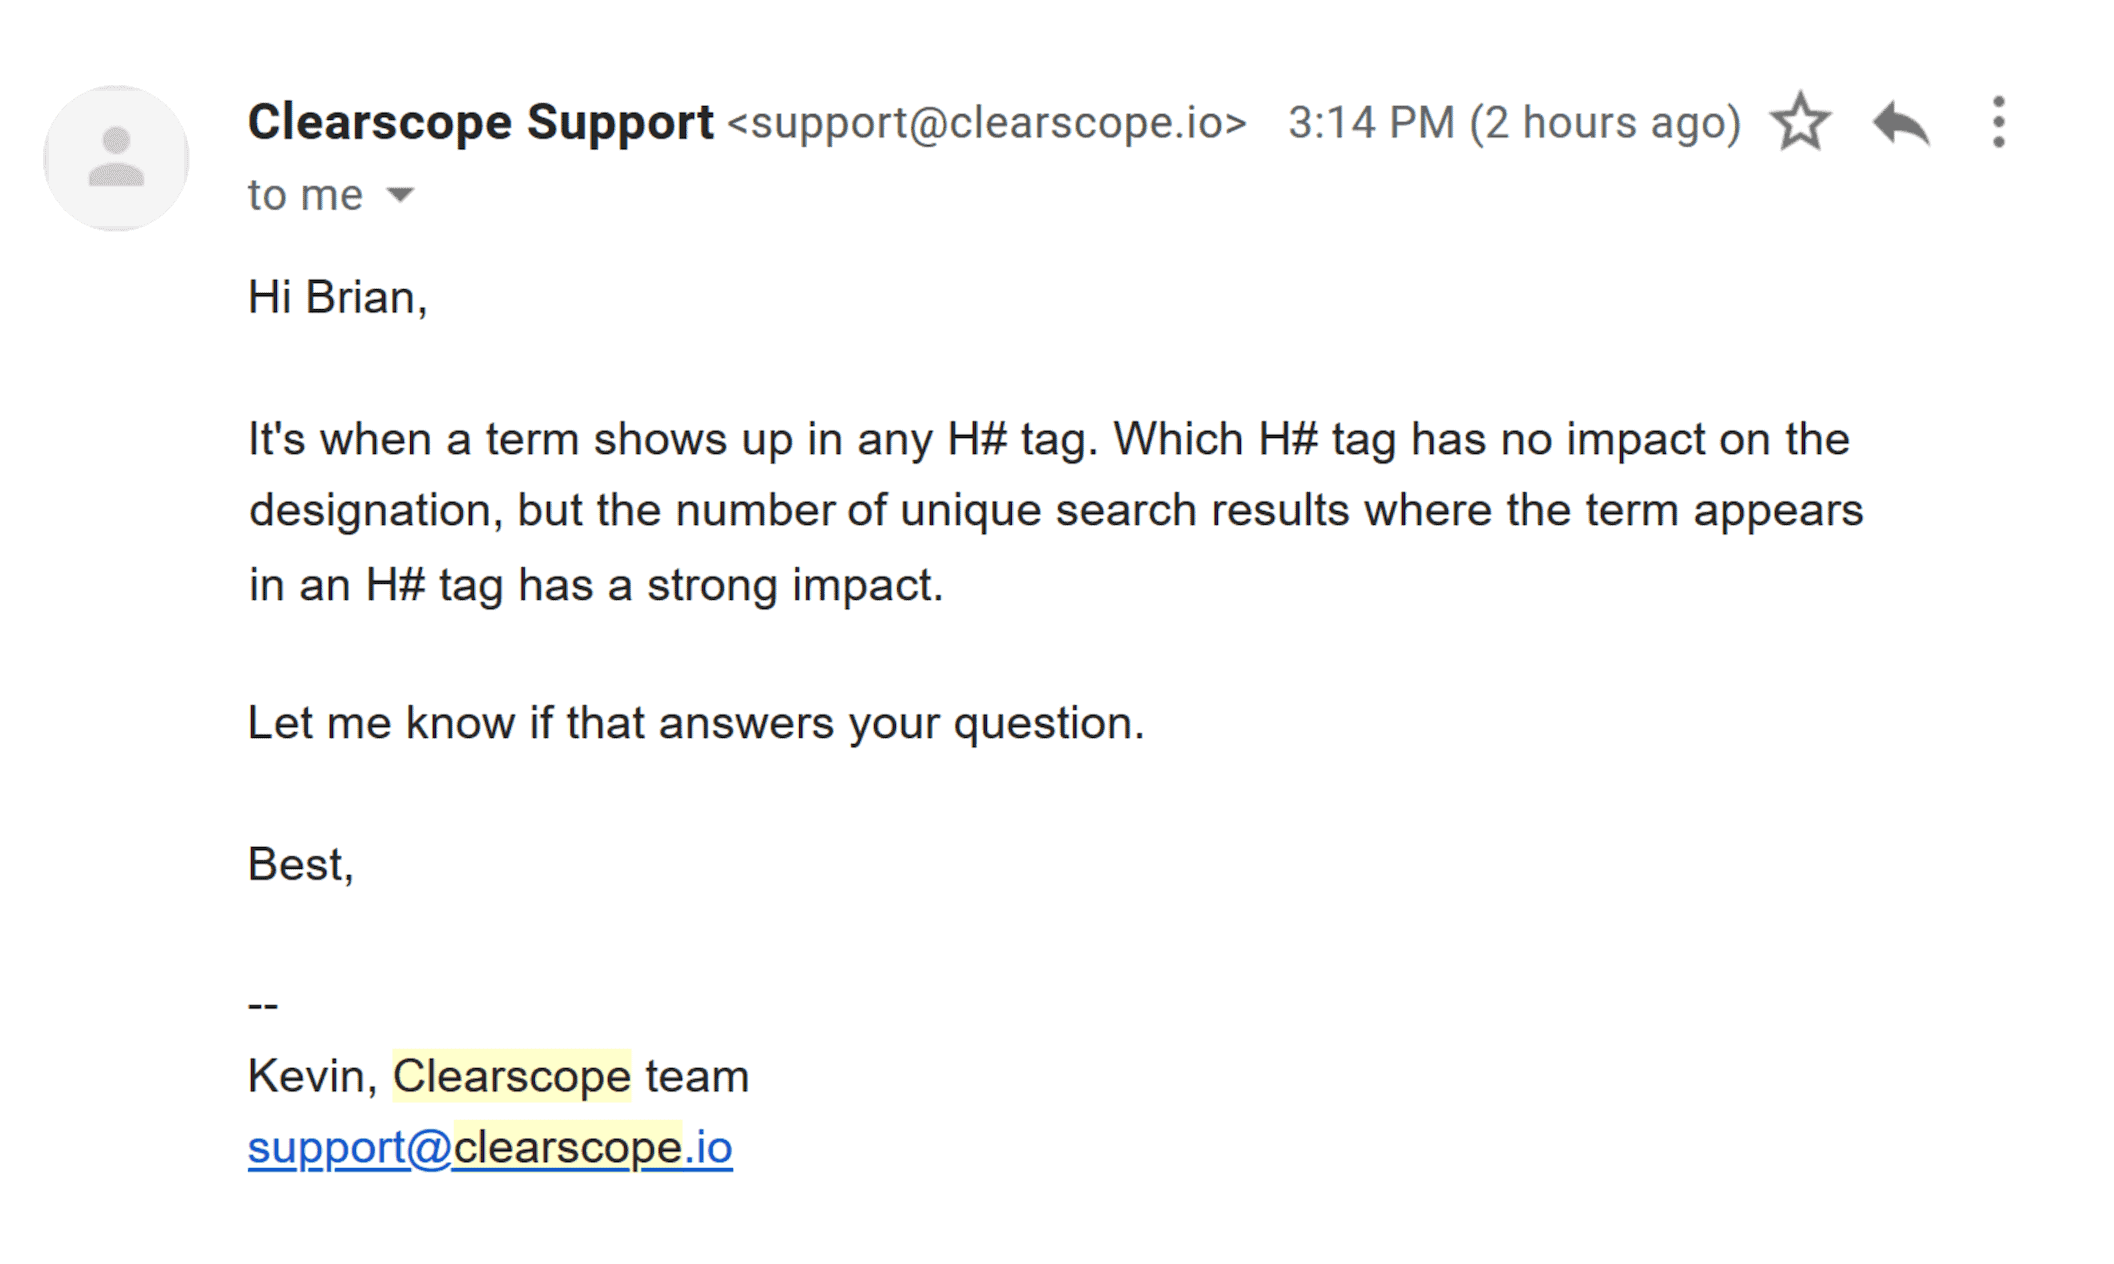 Clearscope – Support – Reply